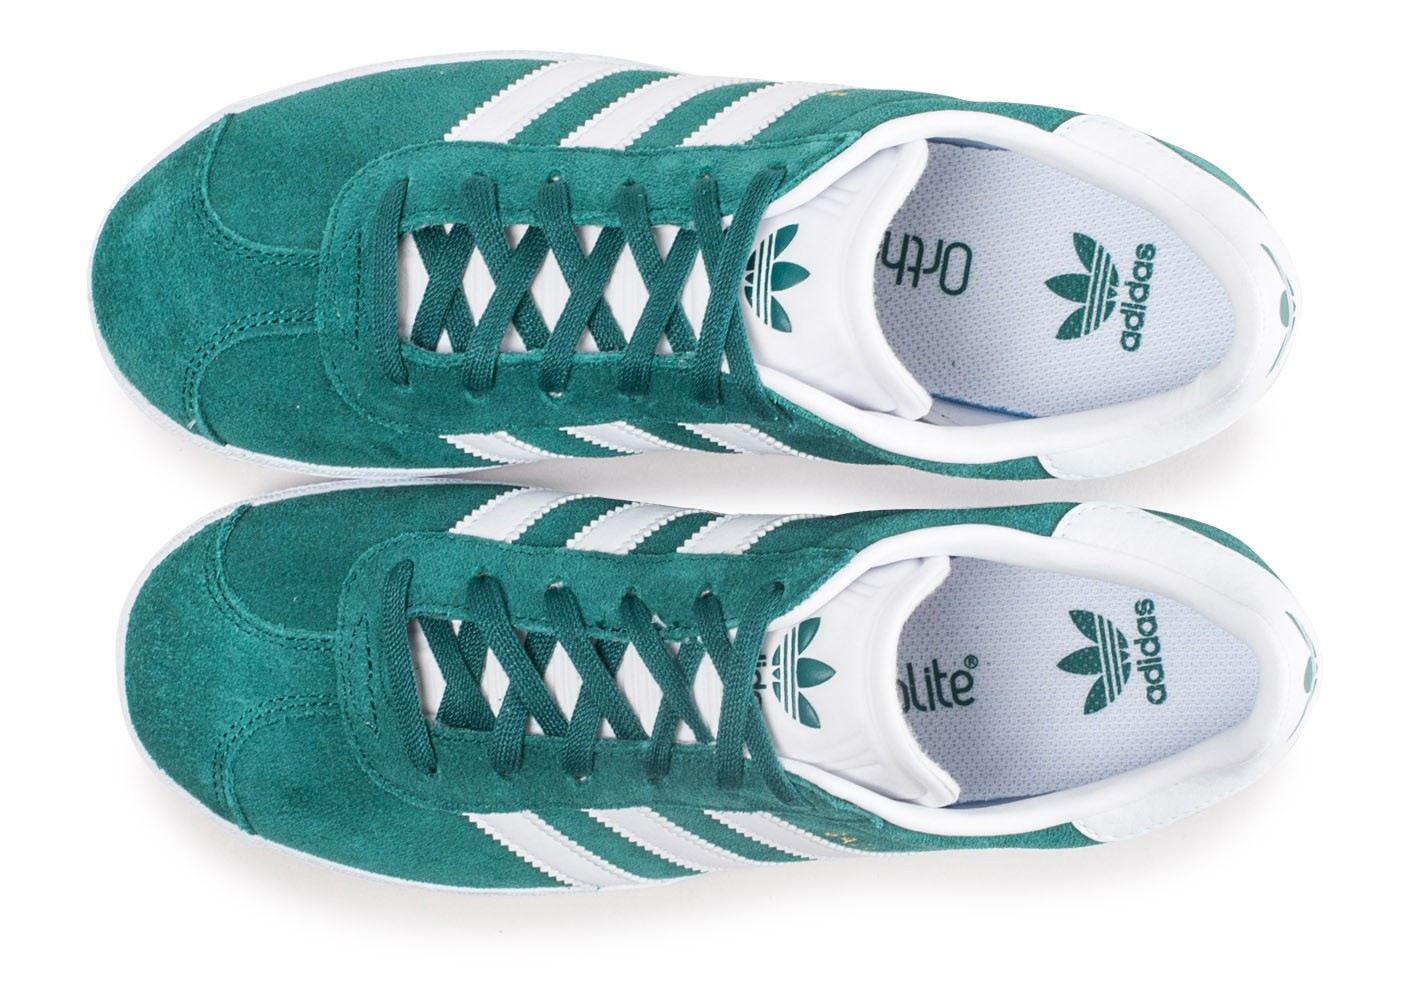 adidas Gazelle verte junior - Chaussures adidas - Chausport